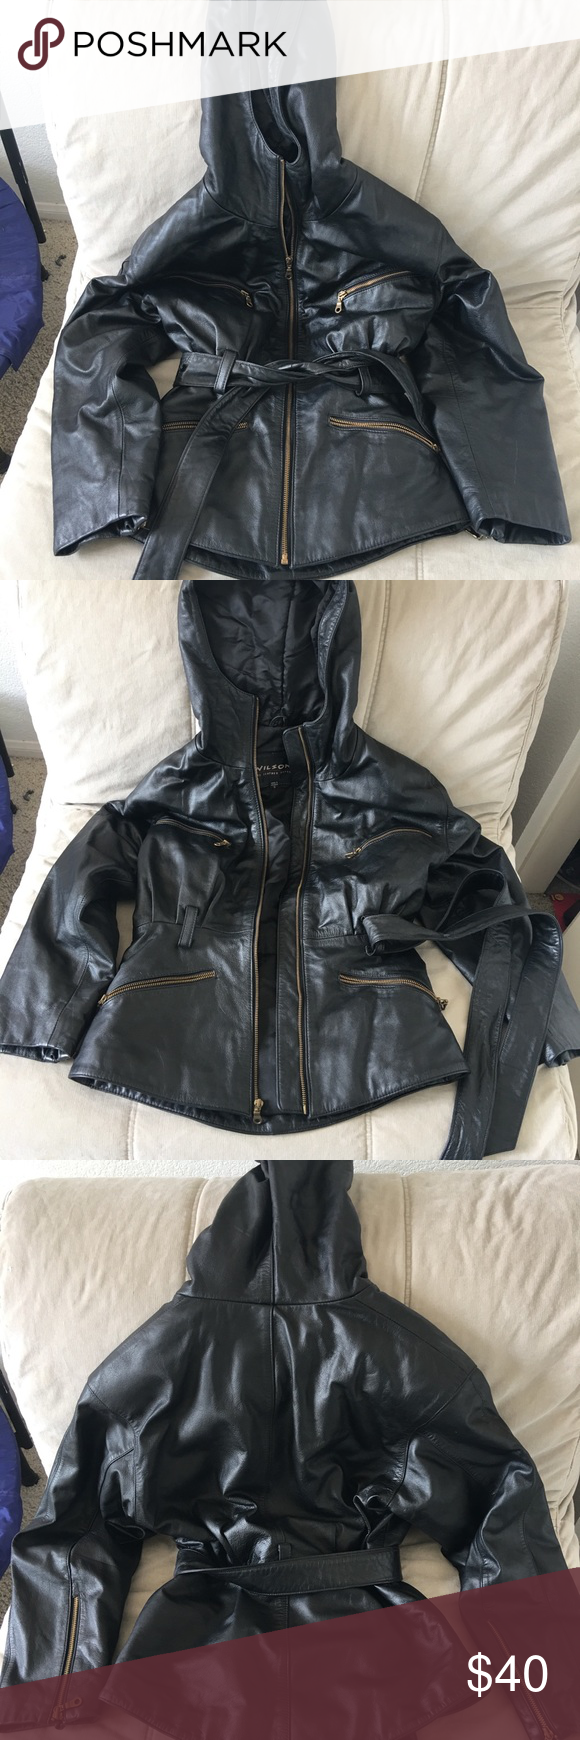 Wilsons Leather hooded jacket Leather jacket with hood